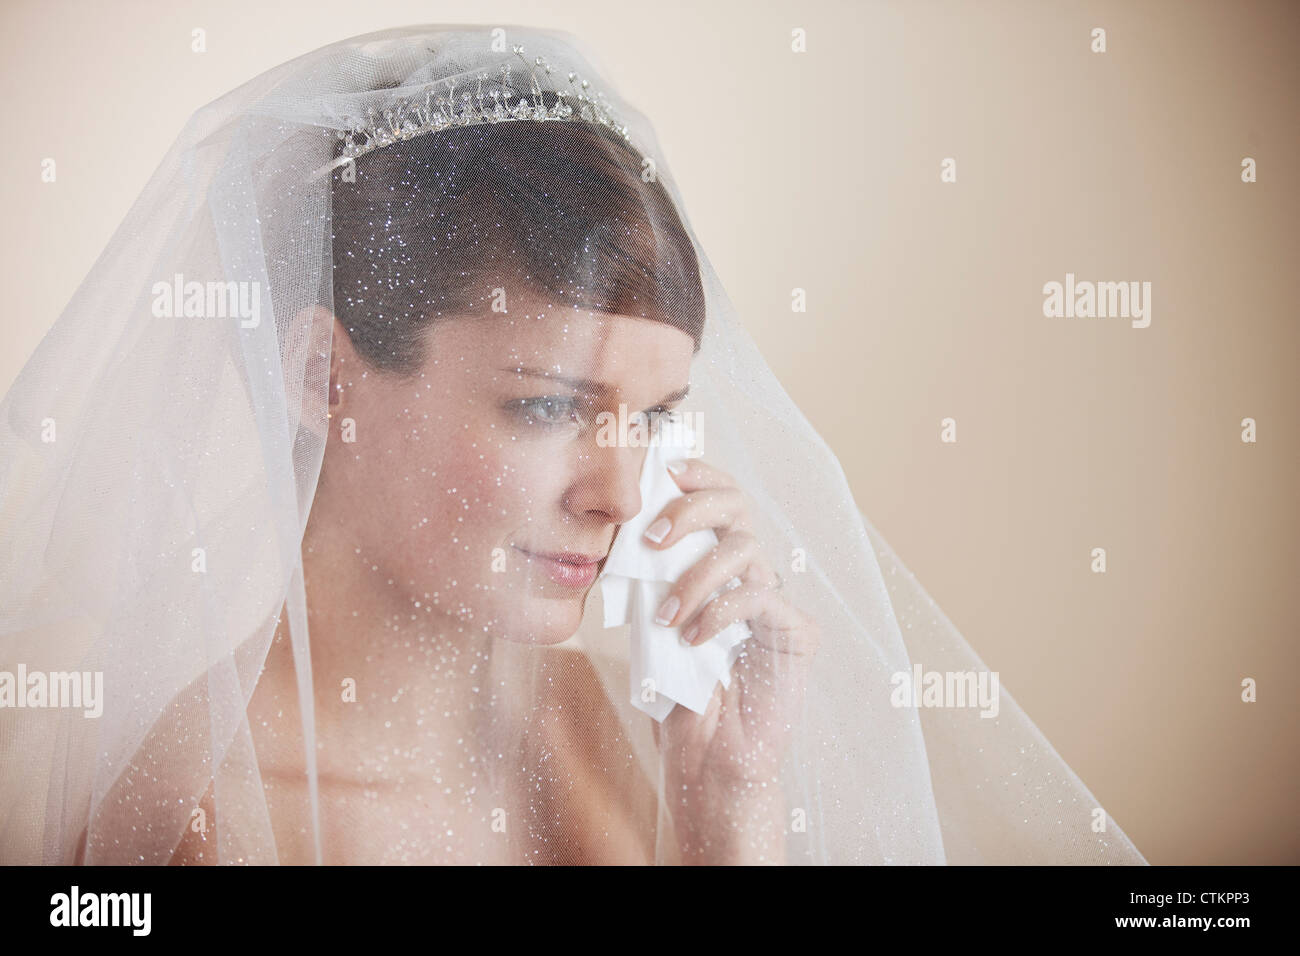 A young bride wiping tears from her face with a tissue - Stock Image